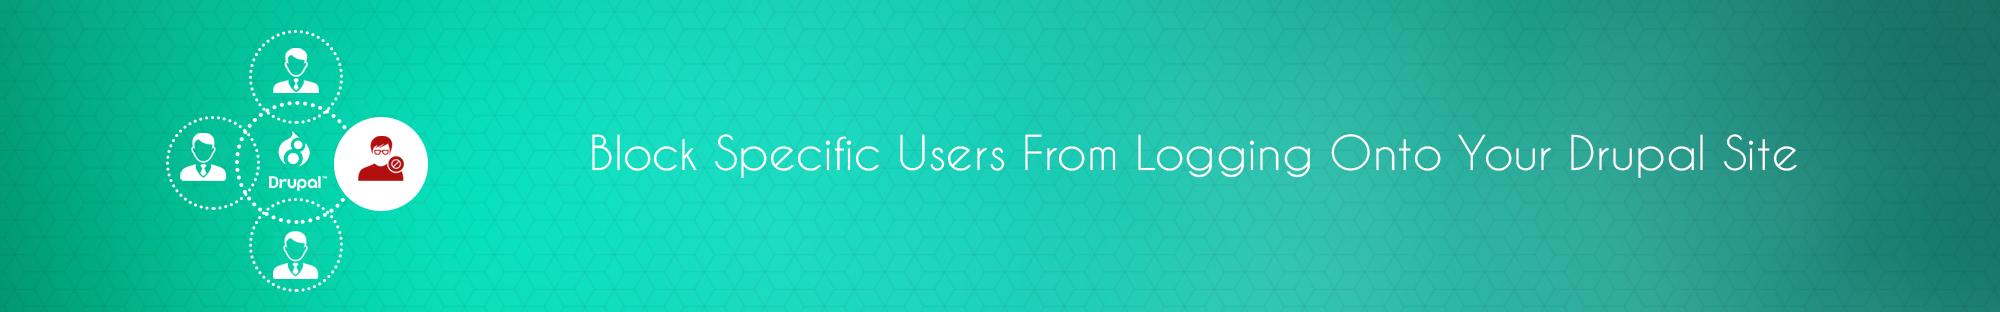 Block Specific Users From Logging Onto Your Drupal Site_Blog